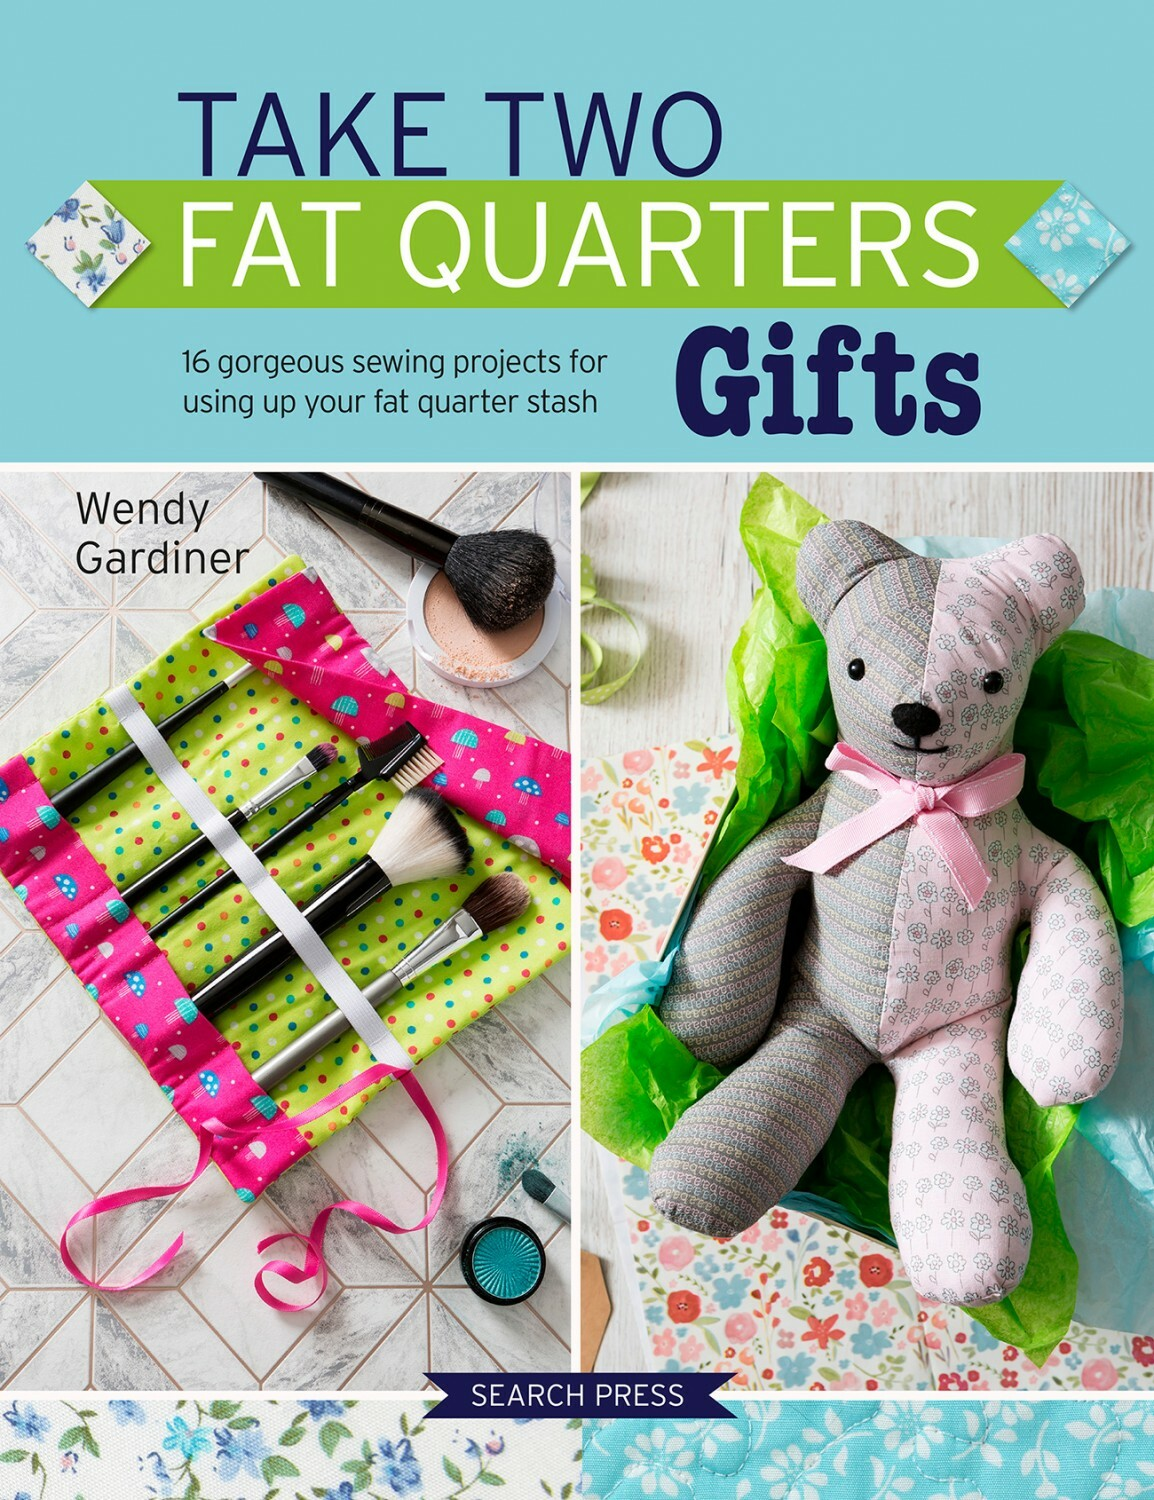 Take Two Fat Quarters: Gifts 56429